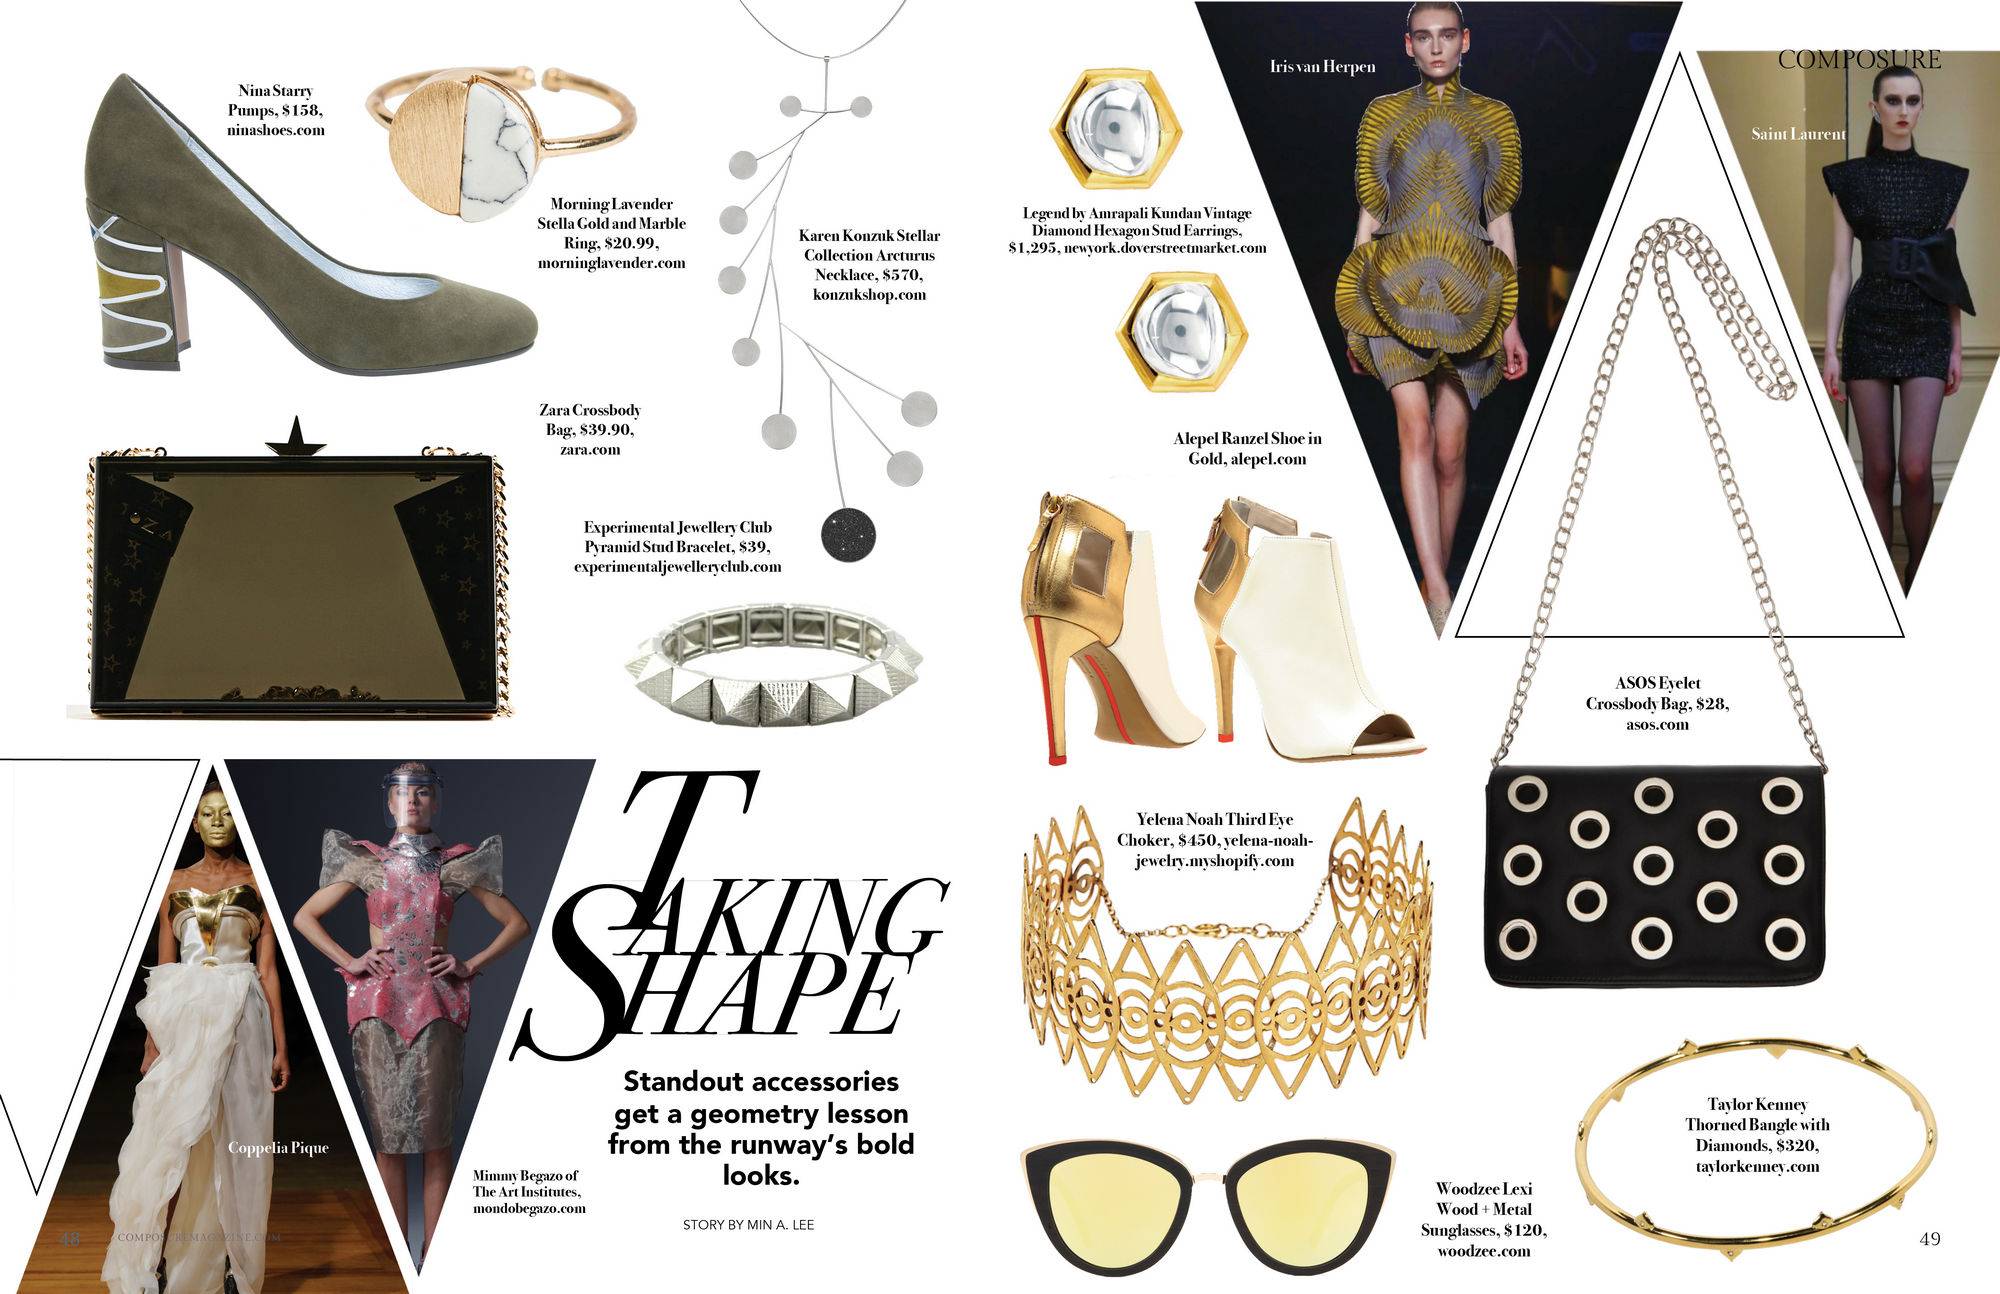 Taking Shape: Standout accessories get a geometry lesson from the runway's bold looks.